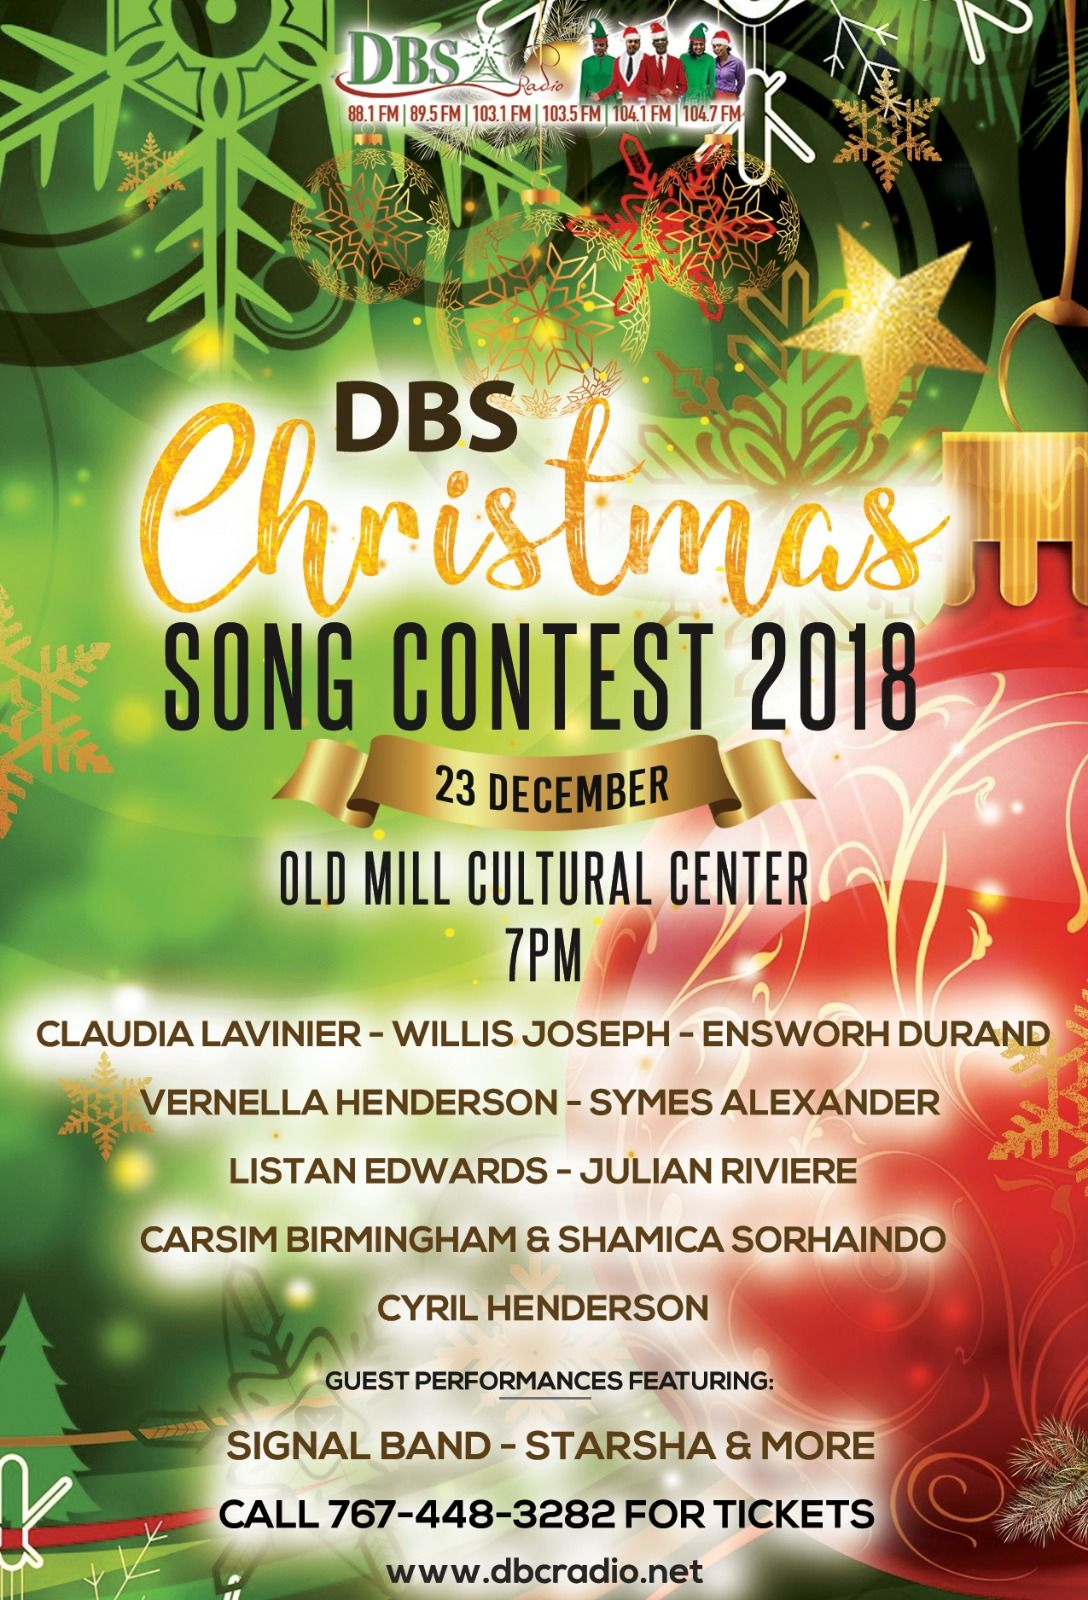 DBS Christmas Song Contest 2018